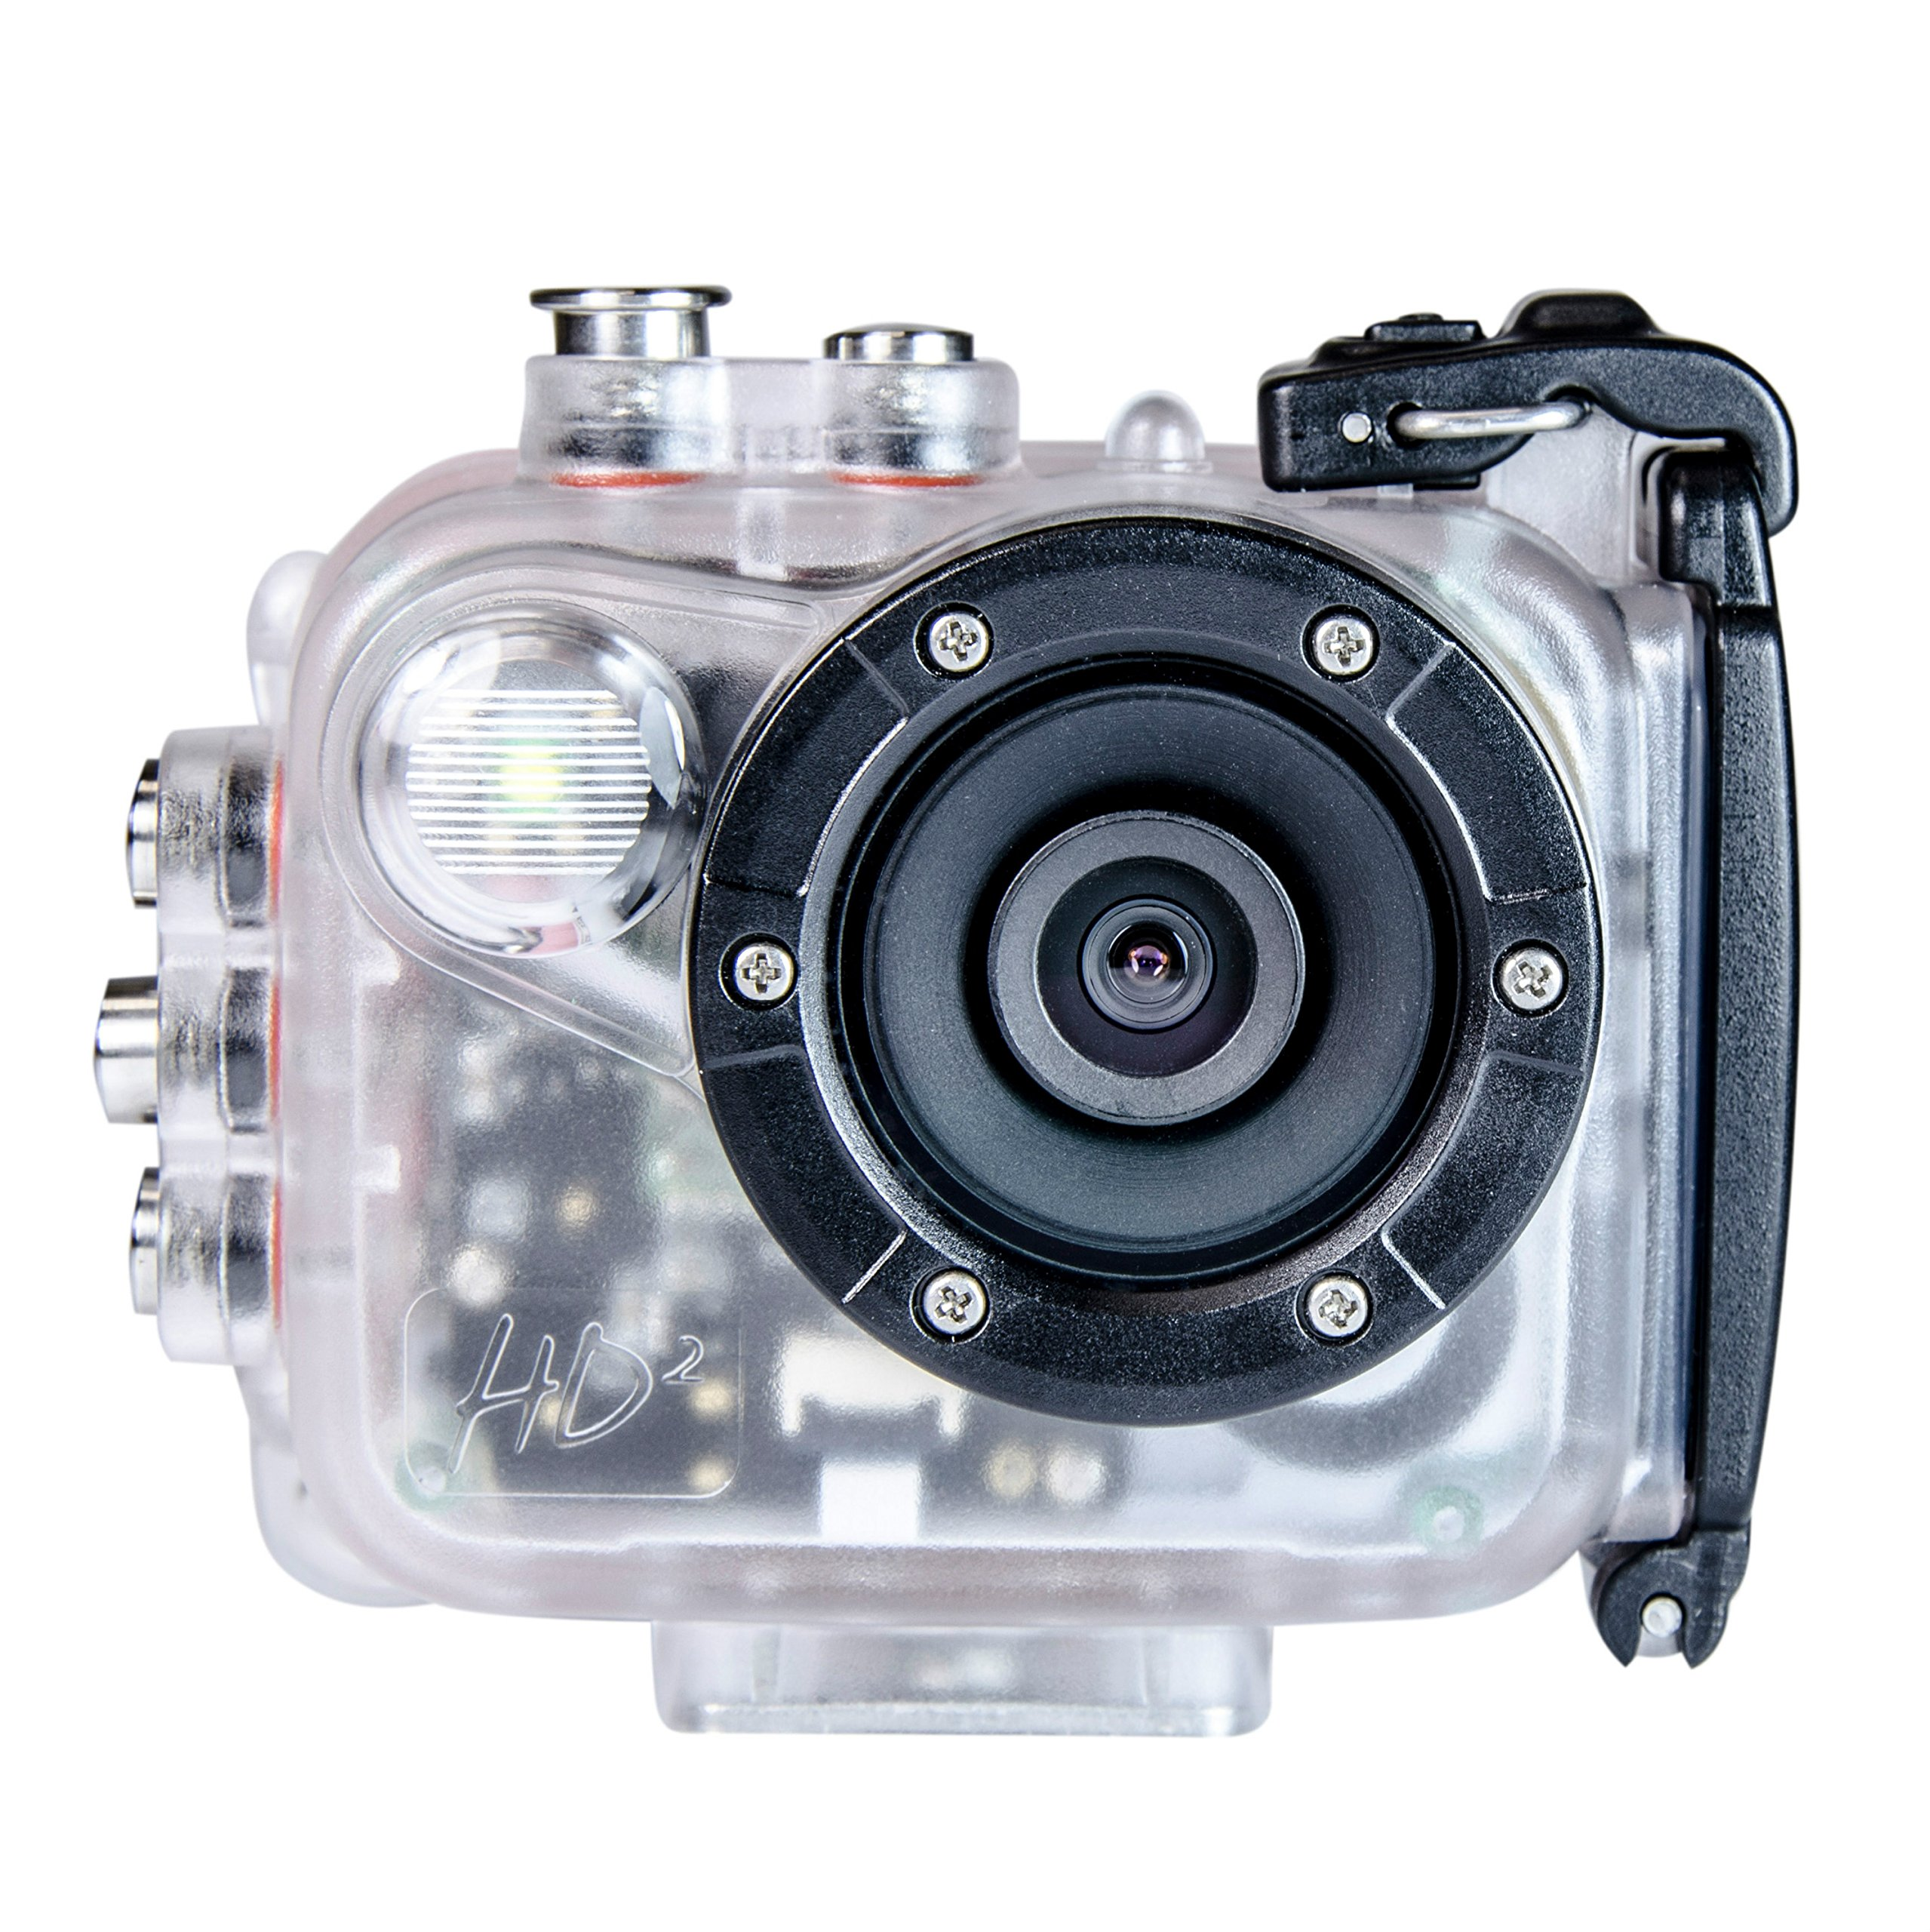 Intova HD2 Waterproof 8MP Action Camera with Built-in 150-Lumen Light and Remote Control by Intova (Image #1)